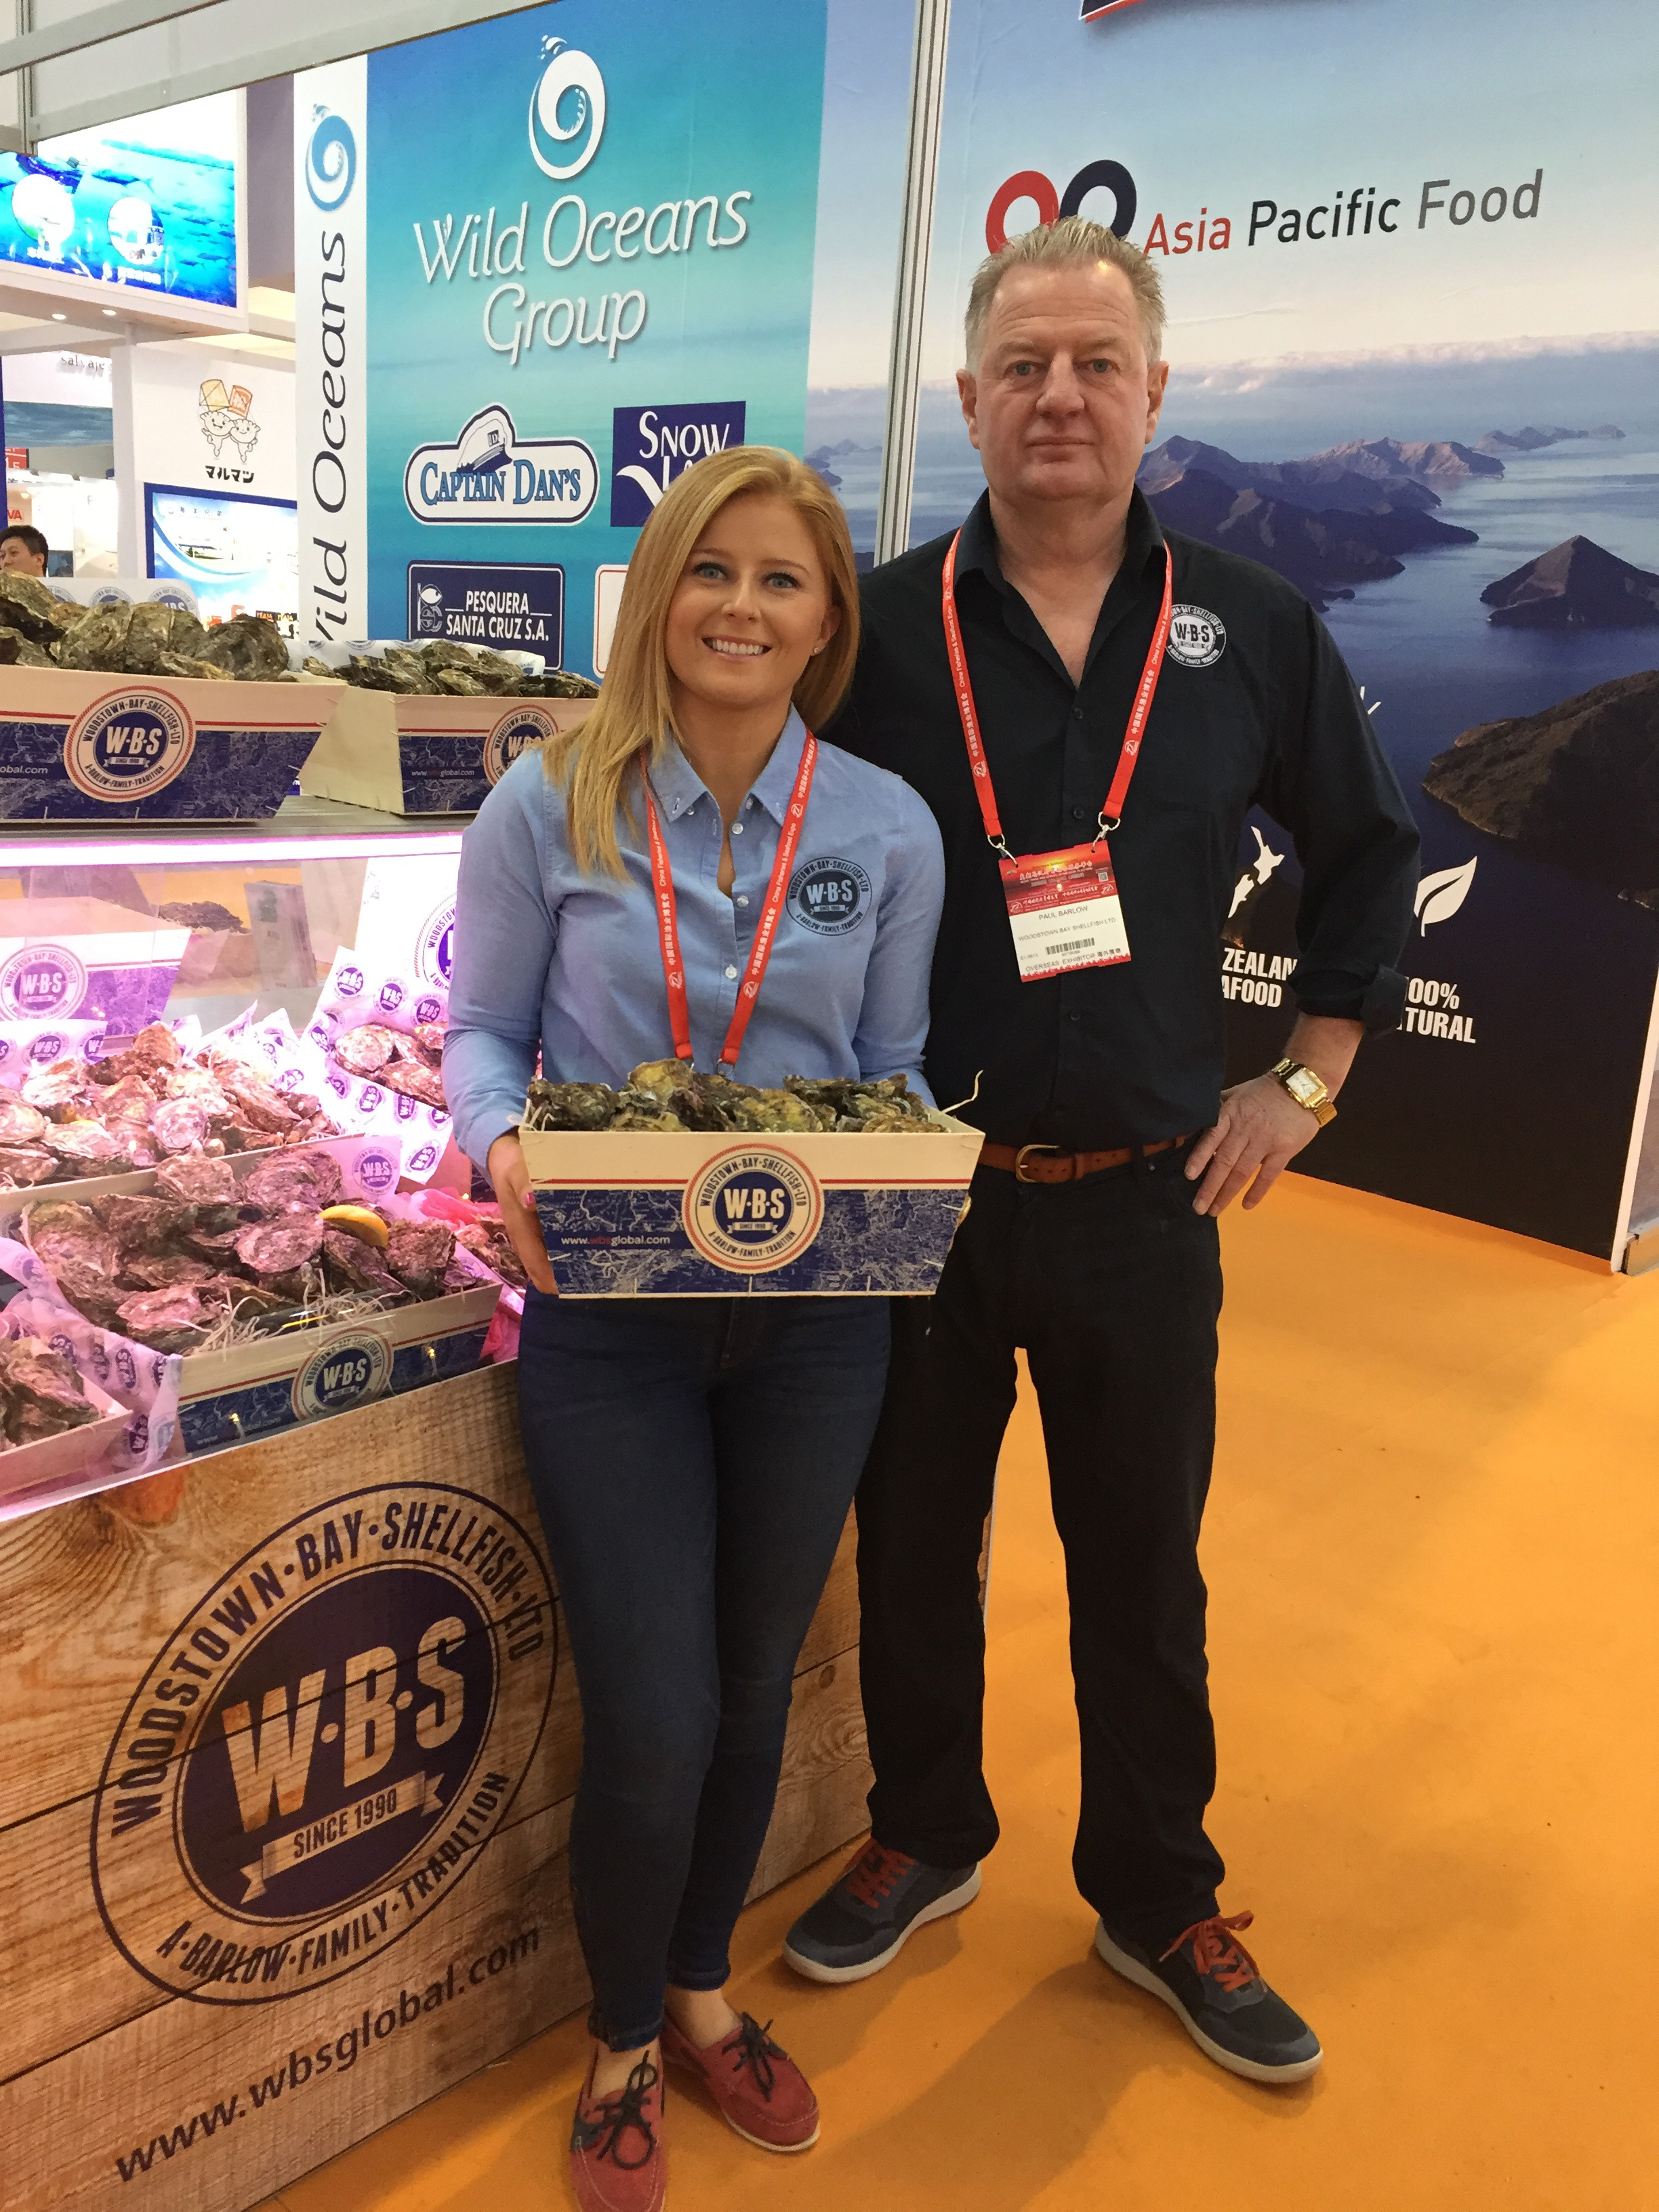 Paul and Naomi Barlow of Woodstown Bay Shellfish, pictured in Qingdao, China during the recently held China Fisheries & Seafood Expo.